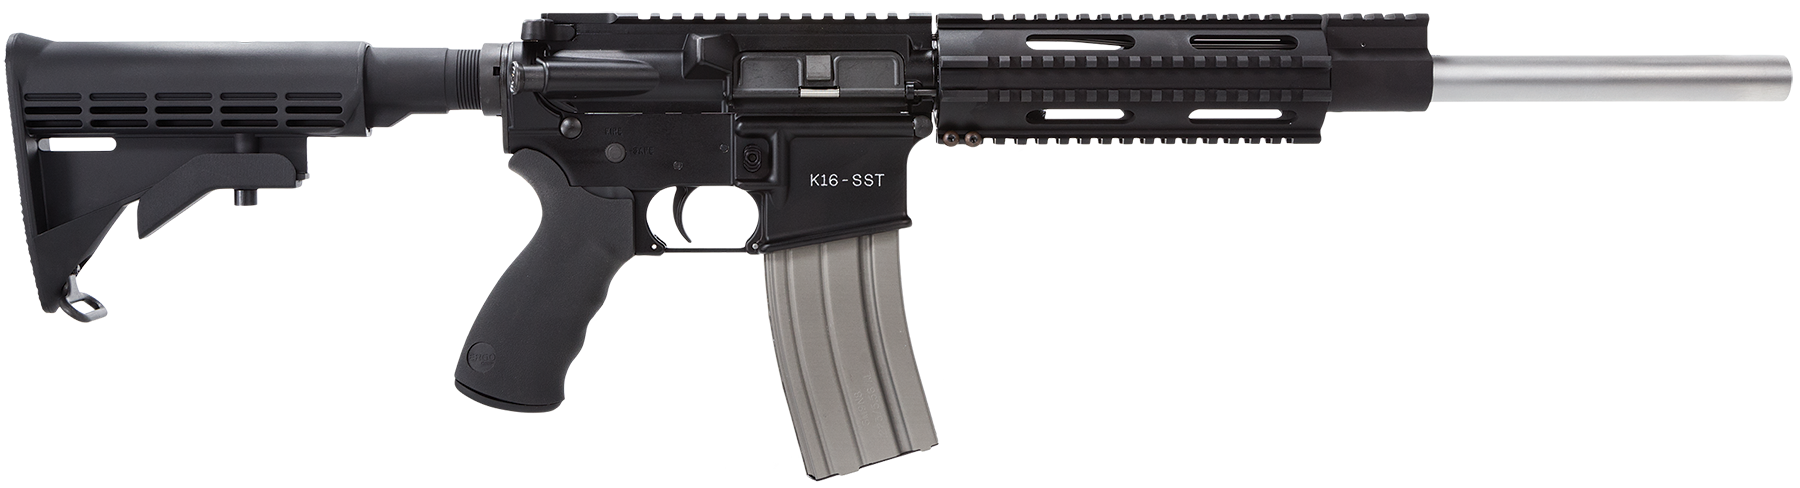 Olympic Arms K16SST K16SST Carbine Semi-Automatic 223 Remington/5.56 NATO 16